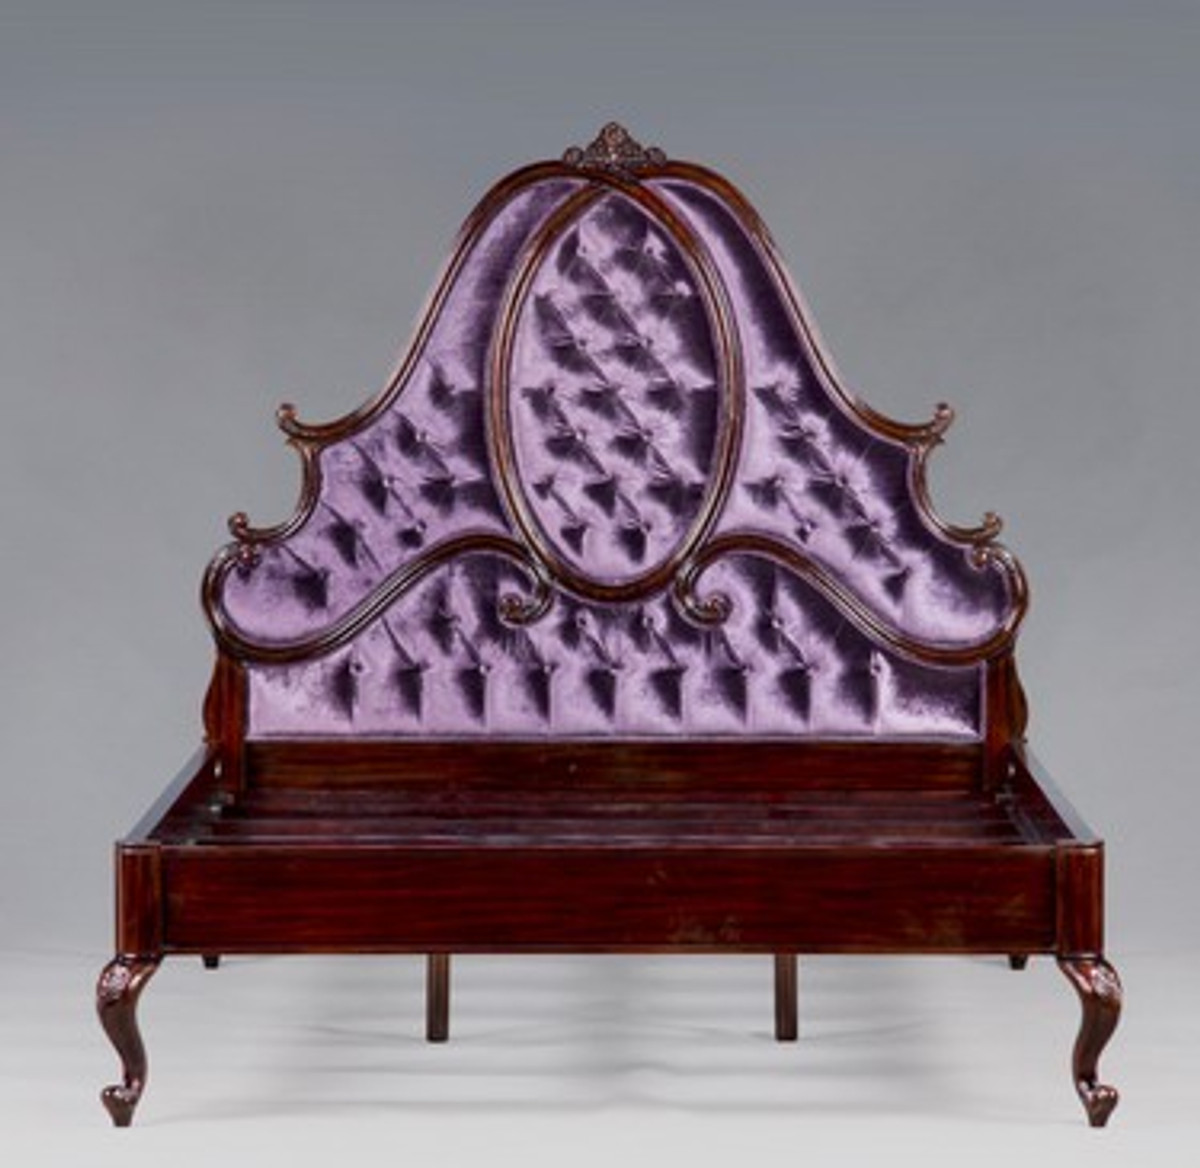 casa padrino luxury baroque bed mahogany purple louis xv french luxury bed beds baroque beds. Black Bedroom Furniture Sets. Home Design Ideas